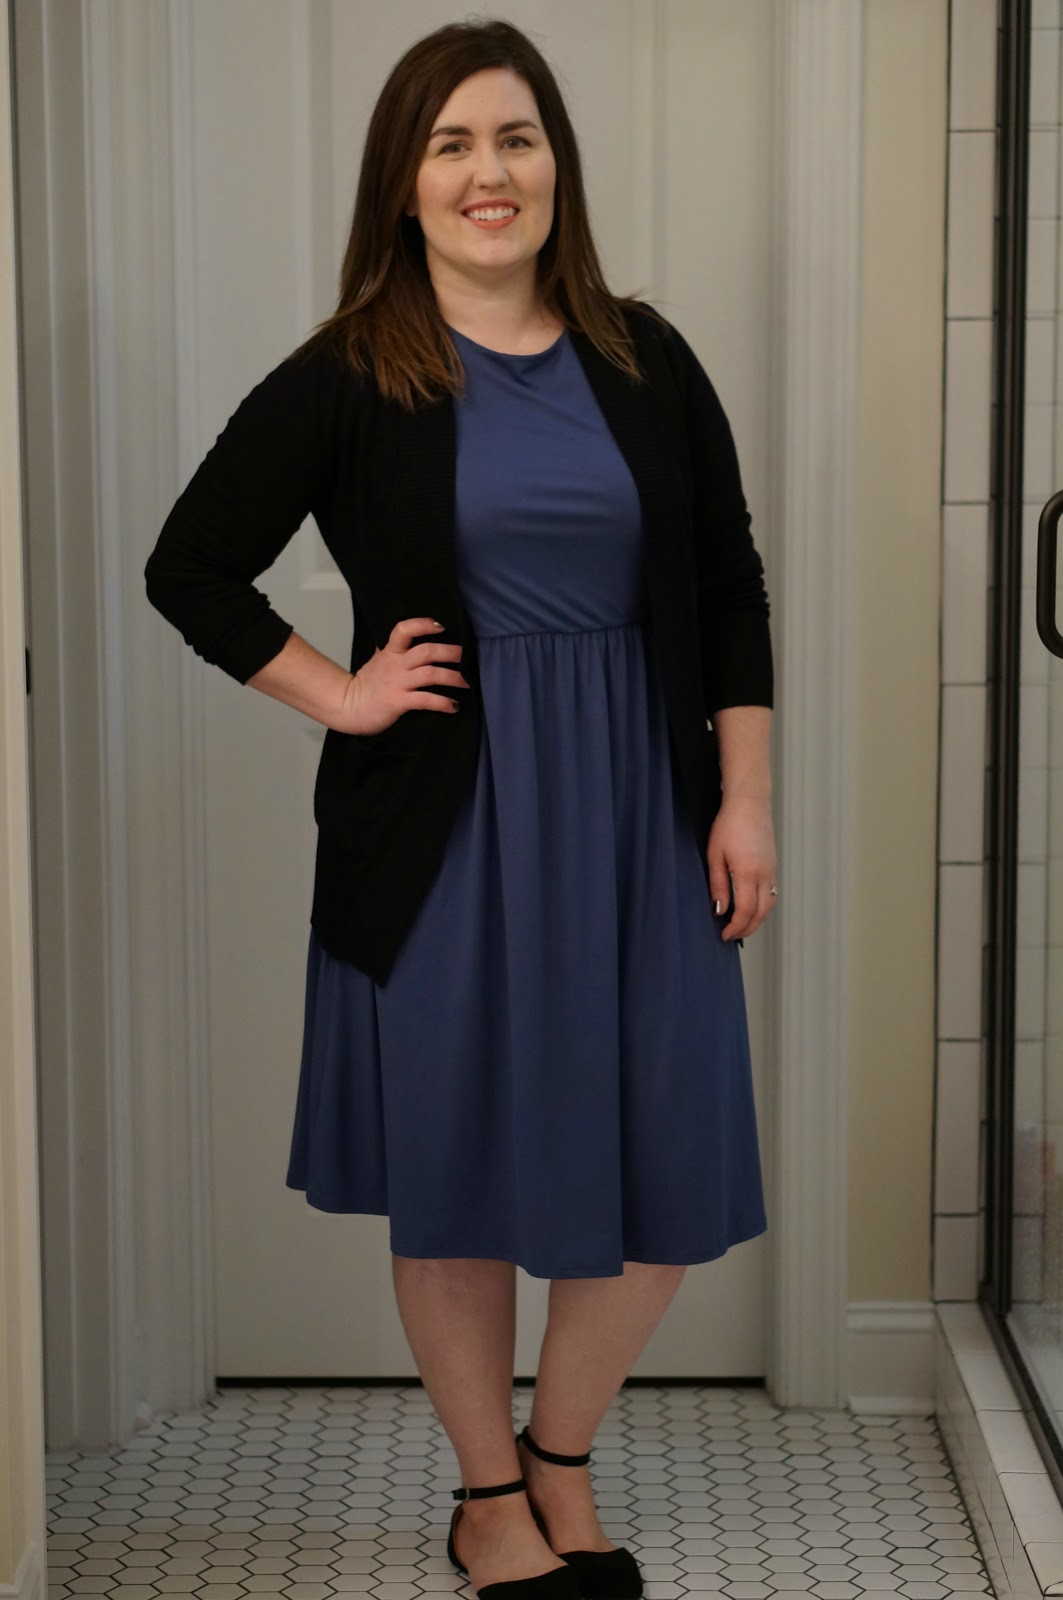 BLUE & BLACK | FALL STYLE by North Carolina style blogger Rebecca Lately